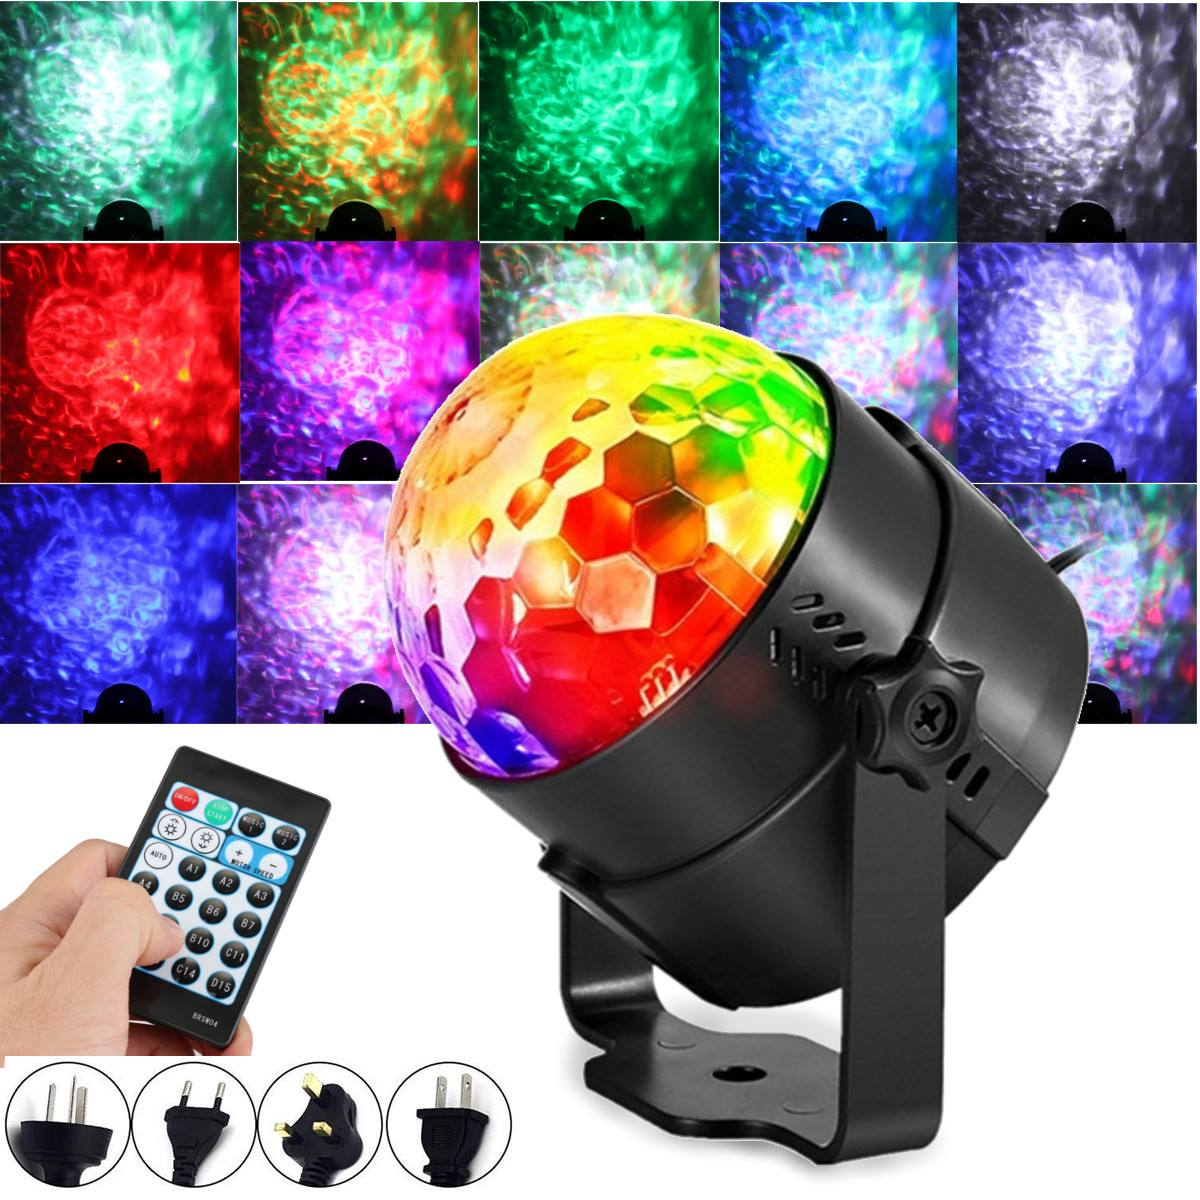 15 Color DJ Disco Ball Lumiere 9W Sound Activated Laser Projector RGB Stage Lighting Effect Lamp Light Music Christmas KTV Party15 Color DJ Disco Ball Lumiere 9W Sound Activated Laser Projector RGB Stage Lighting Effect Lamp Light Music Christmas KTV Party